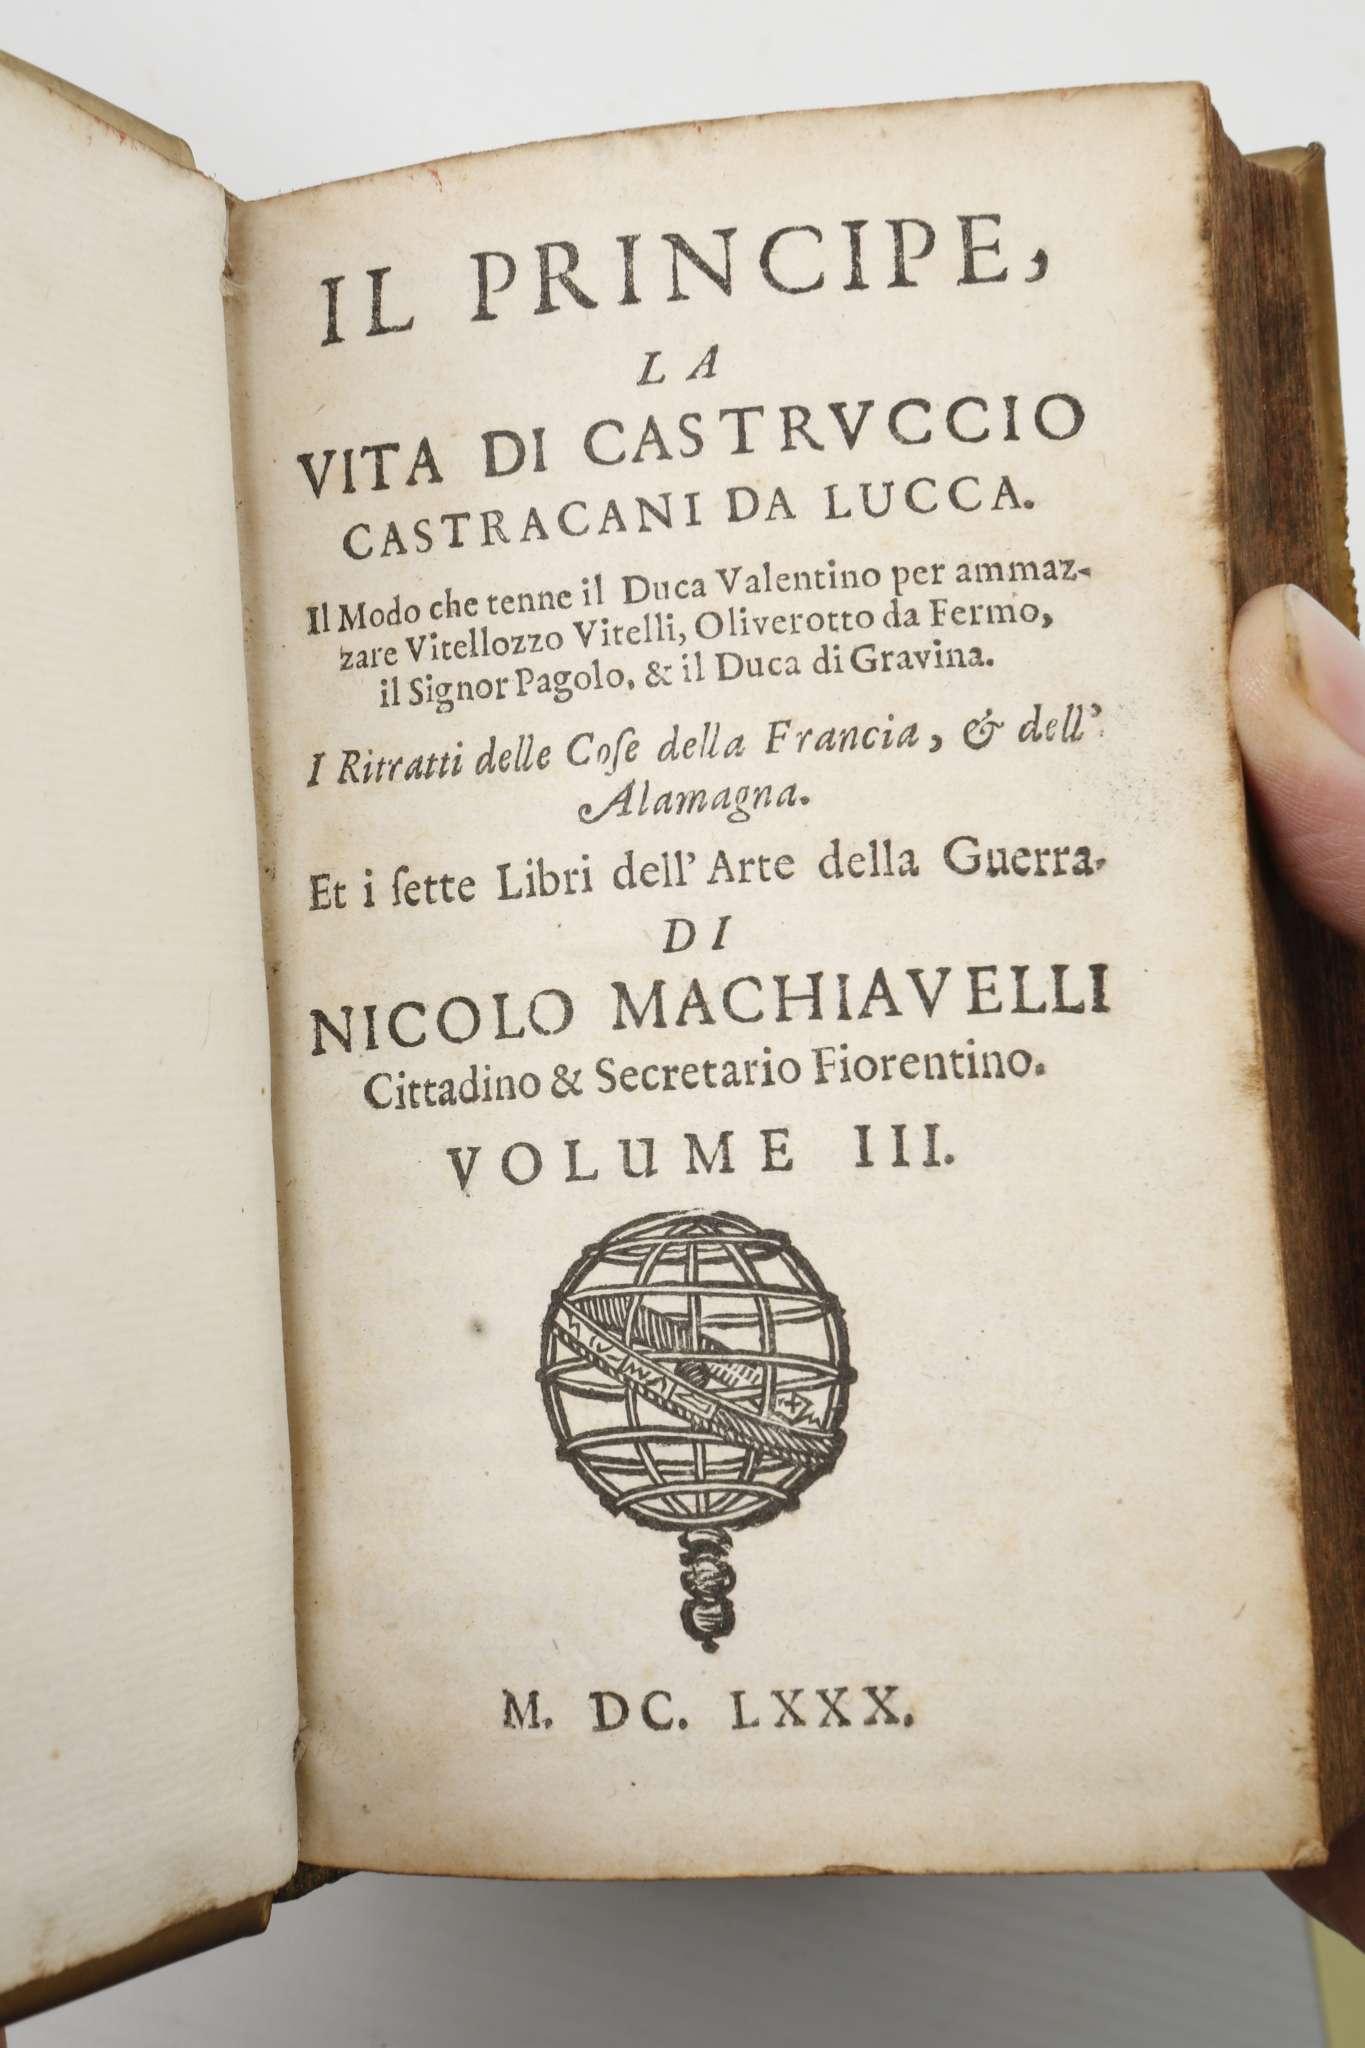 machiavelli perspective on globalization Ebscohost serves thousands of libraries with premium essays, articles and other content including kautilya and machiavelli views on state and politics: a comparative analysis get access to over 12 million other articles.